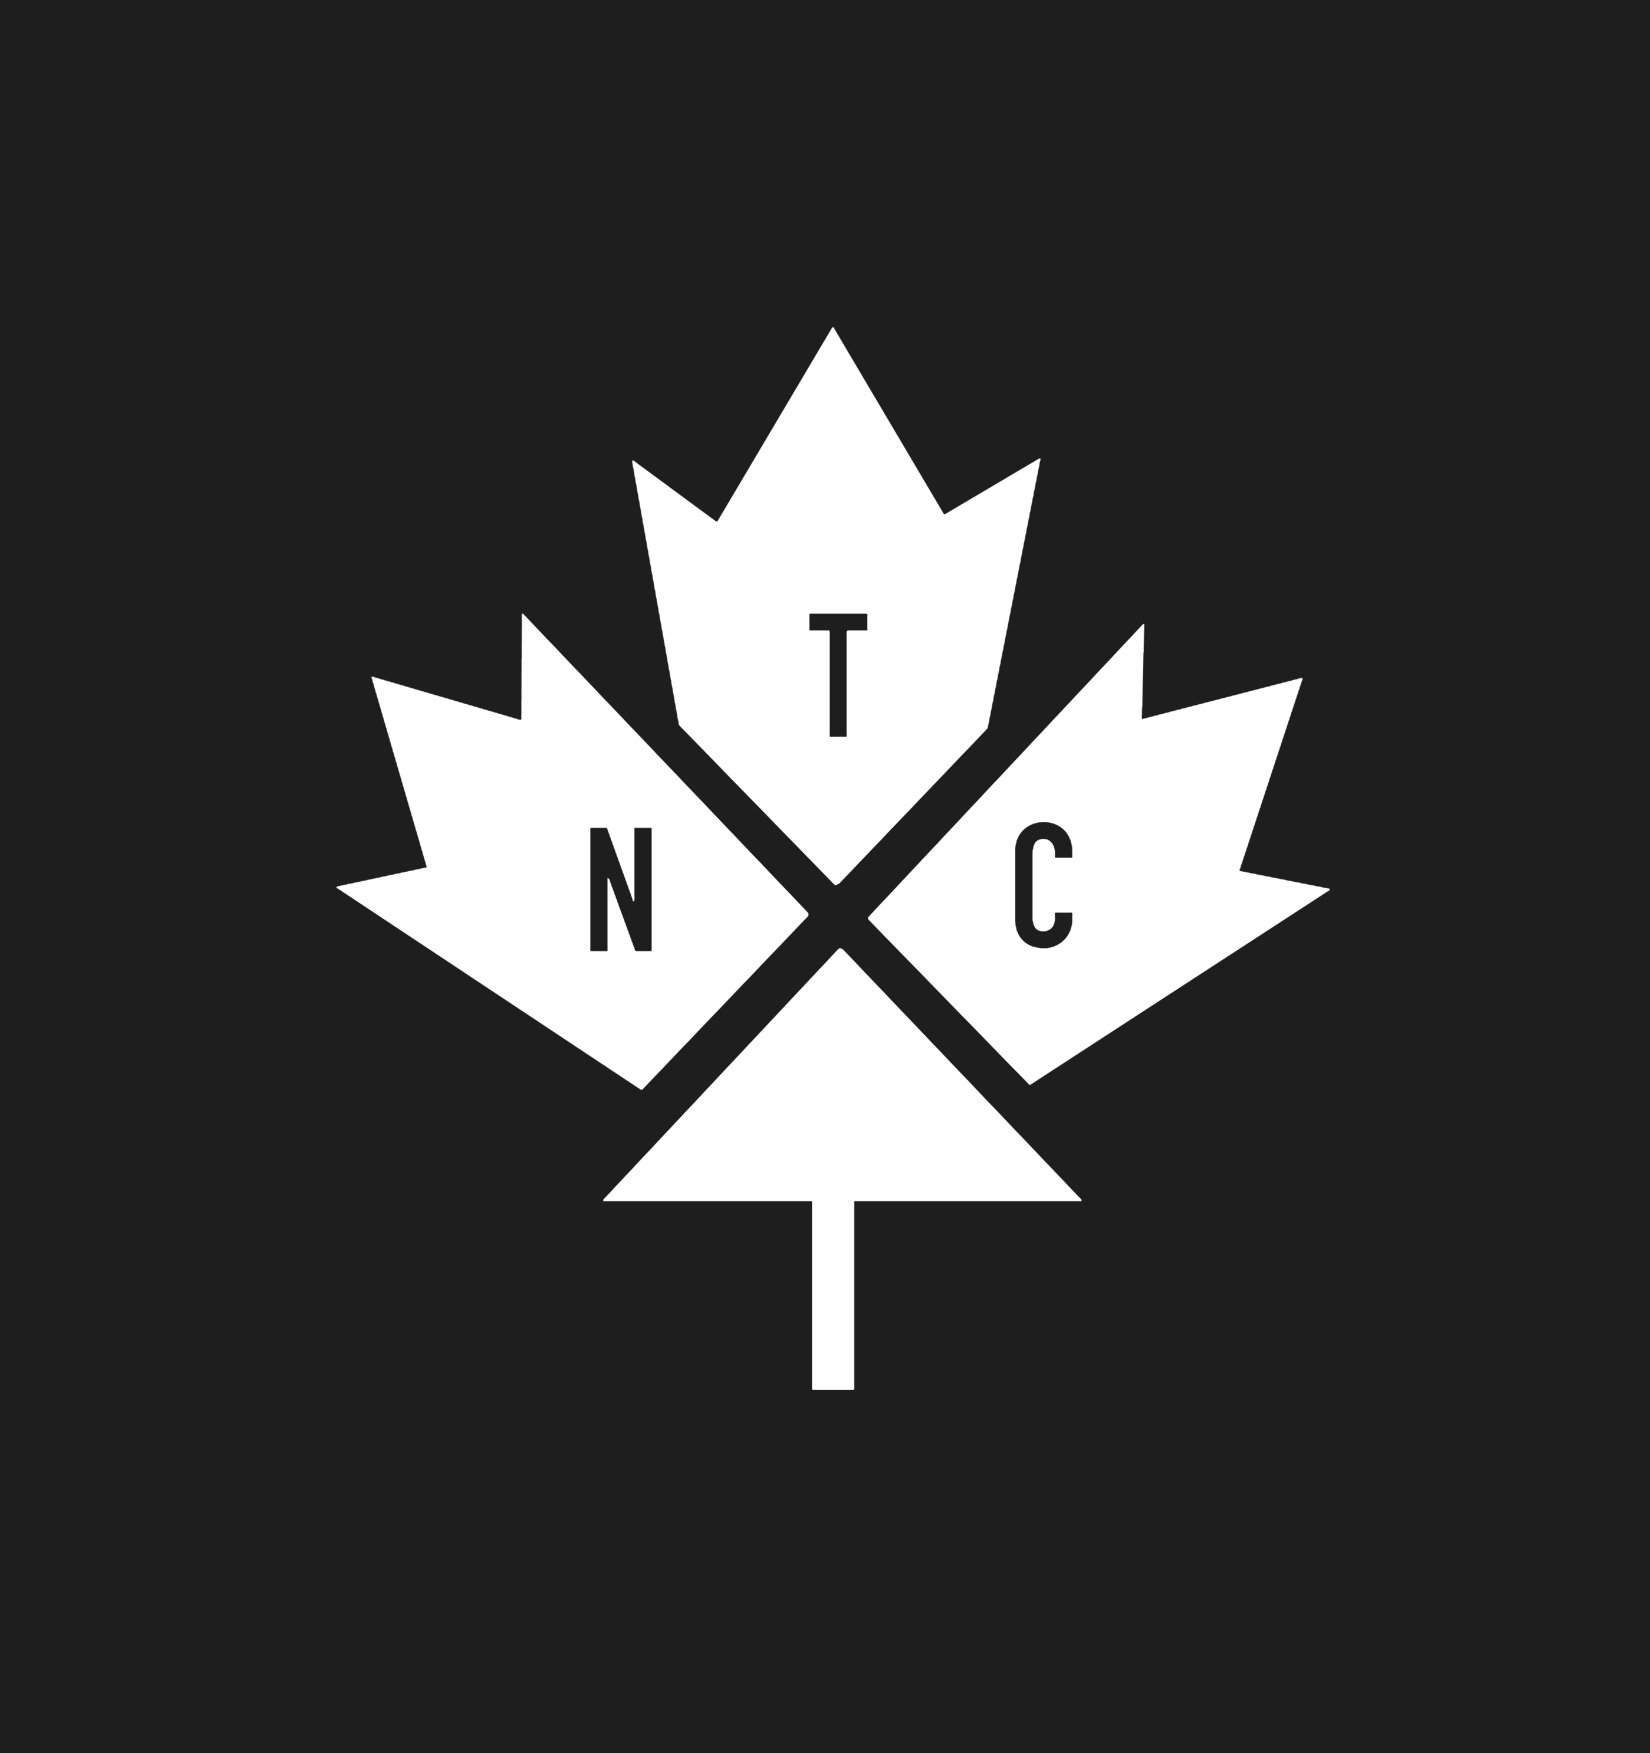 Northern T shirt Company logo